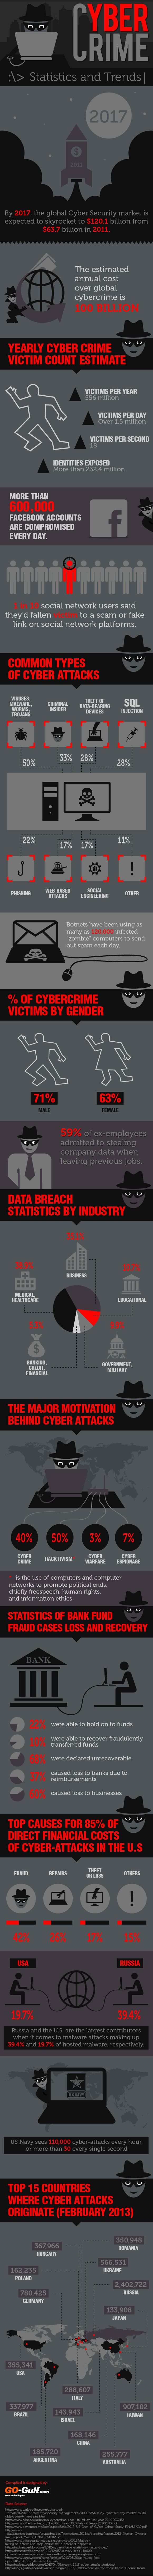 Check out our infographic to know the latest statistics and trends of Cyber Crime industry.